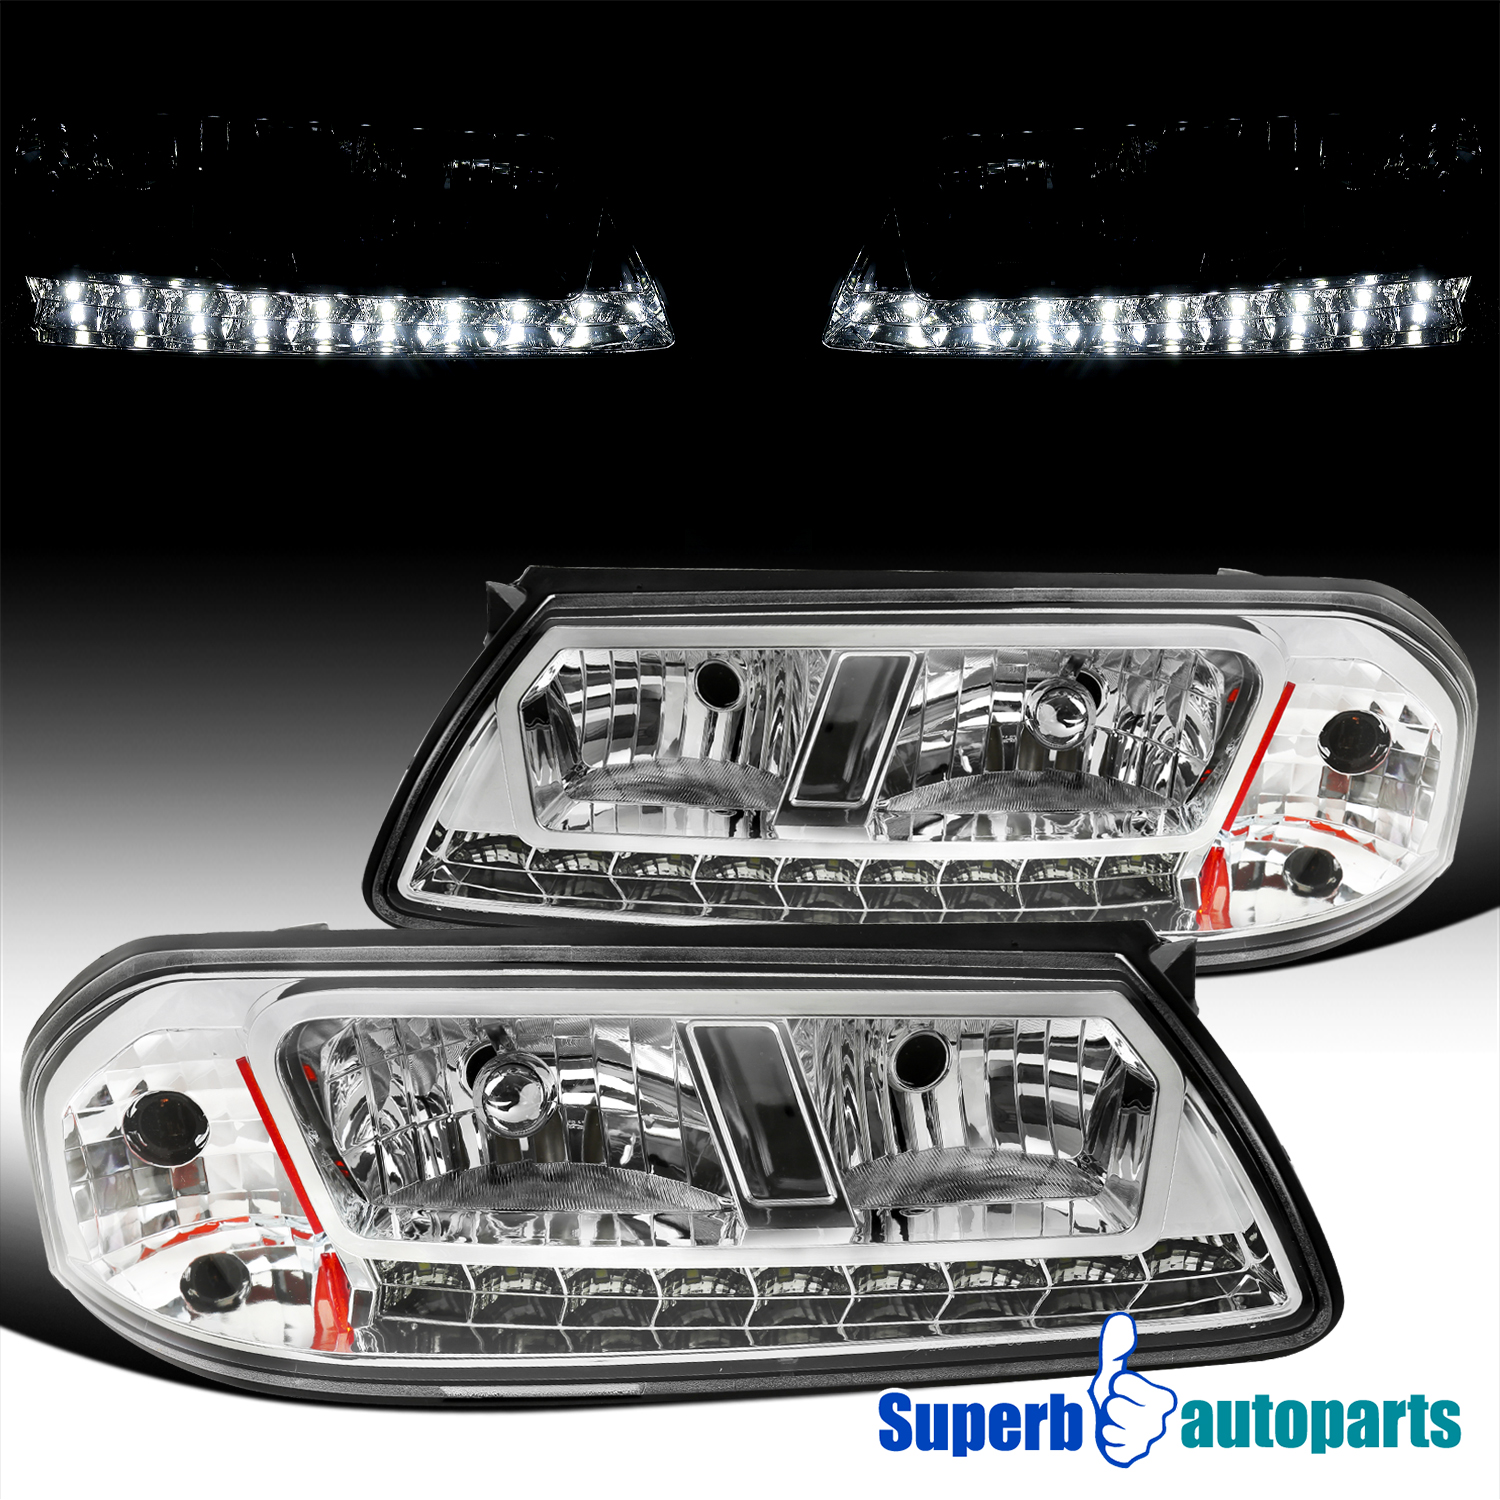 -Chrome 2006 Mitsubishi Fuso FE SERIES Post mount spotlight 6 inch LED Driver side WITH install kit